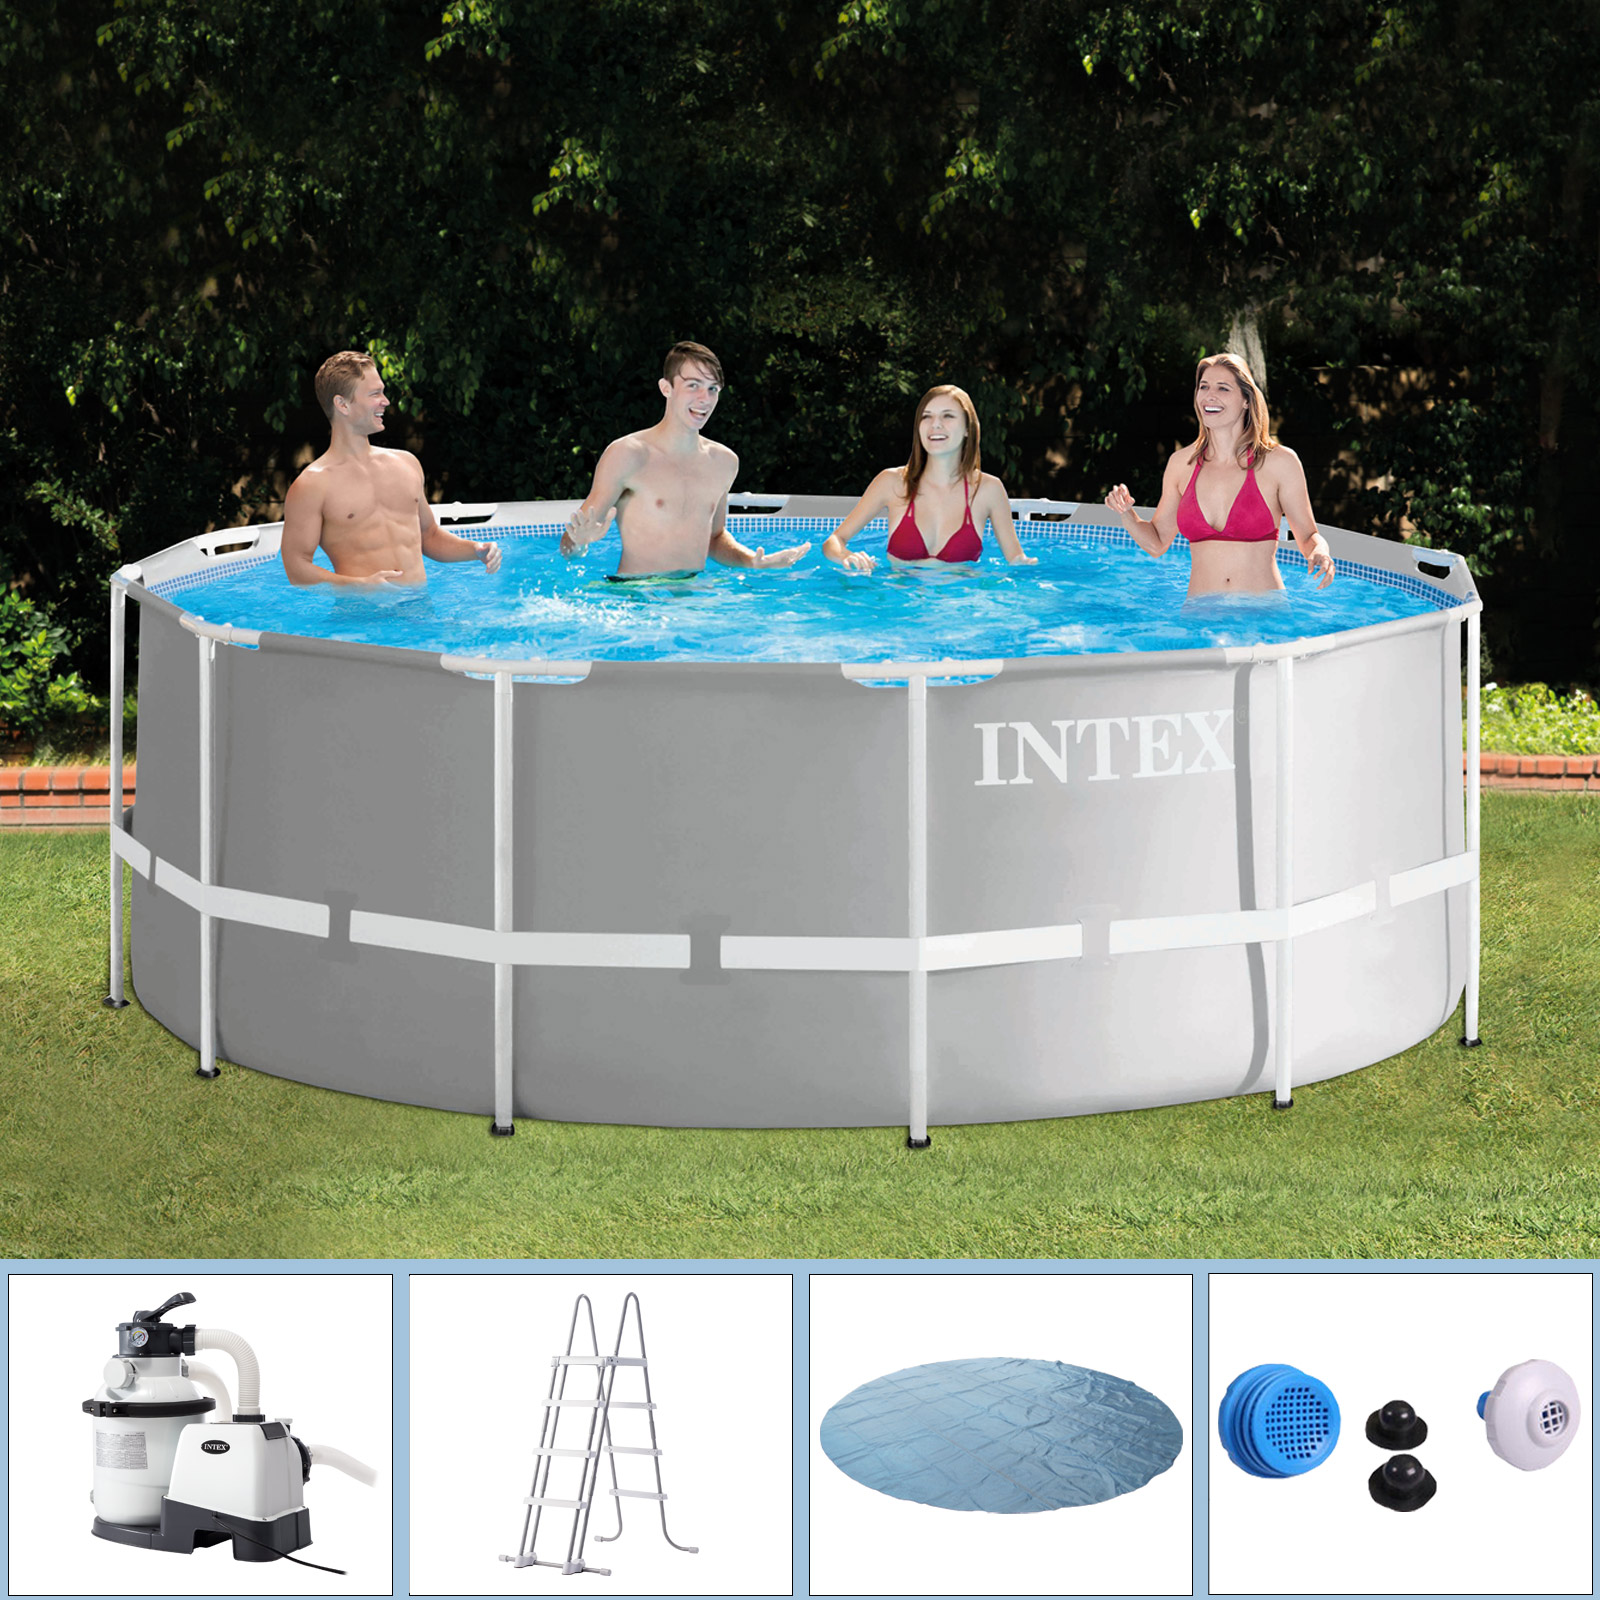 Intex Pool Frame Rund Intex Swimming Pool Frame 366x122 Cm Mit Sandfilter Leiter Solarfolie